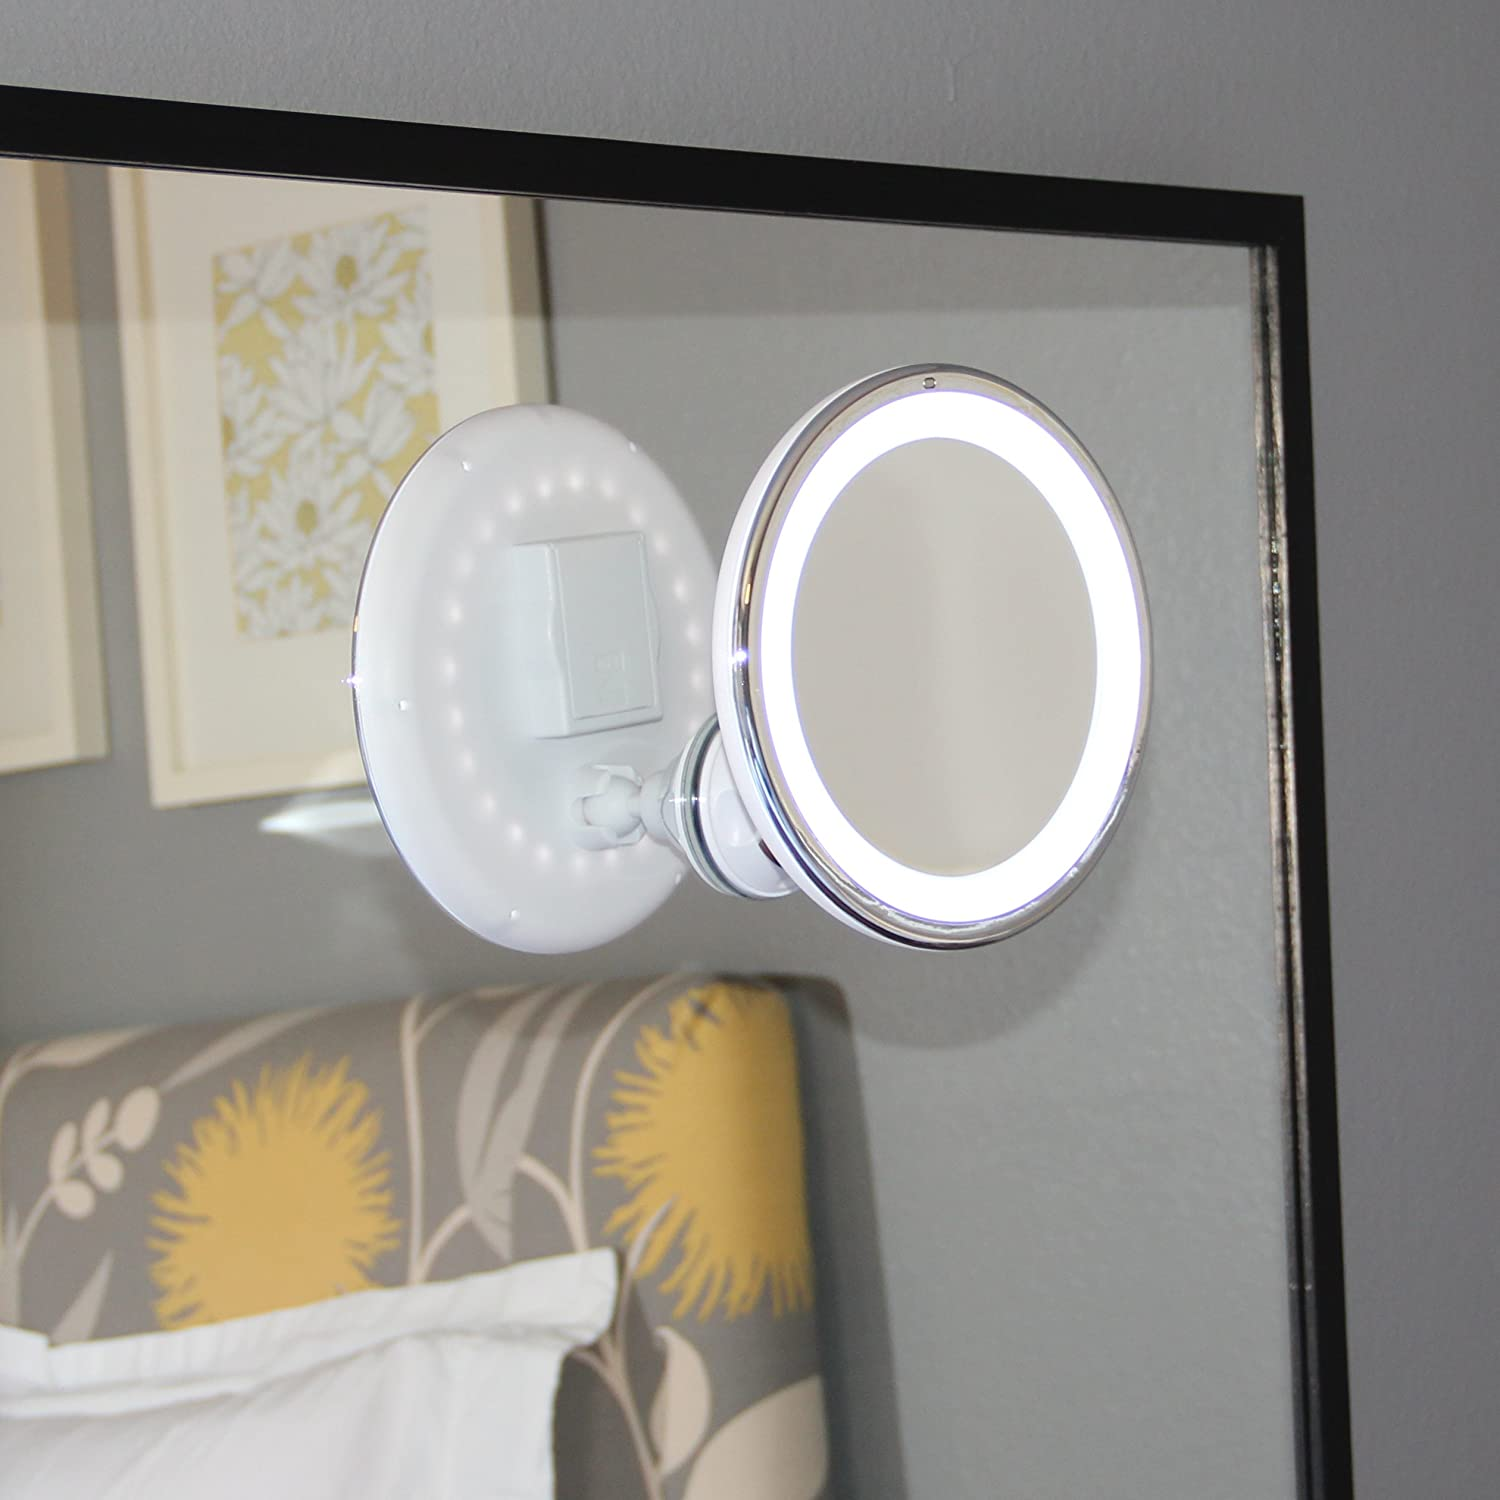 Amazon.com: LED Makeup Mirror   Adjustable 5x Magnification Lighted Makeup  Mirror Vanity. Warm LED Tap Light Bathroom Mirror With Powerful Rotating,  ...